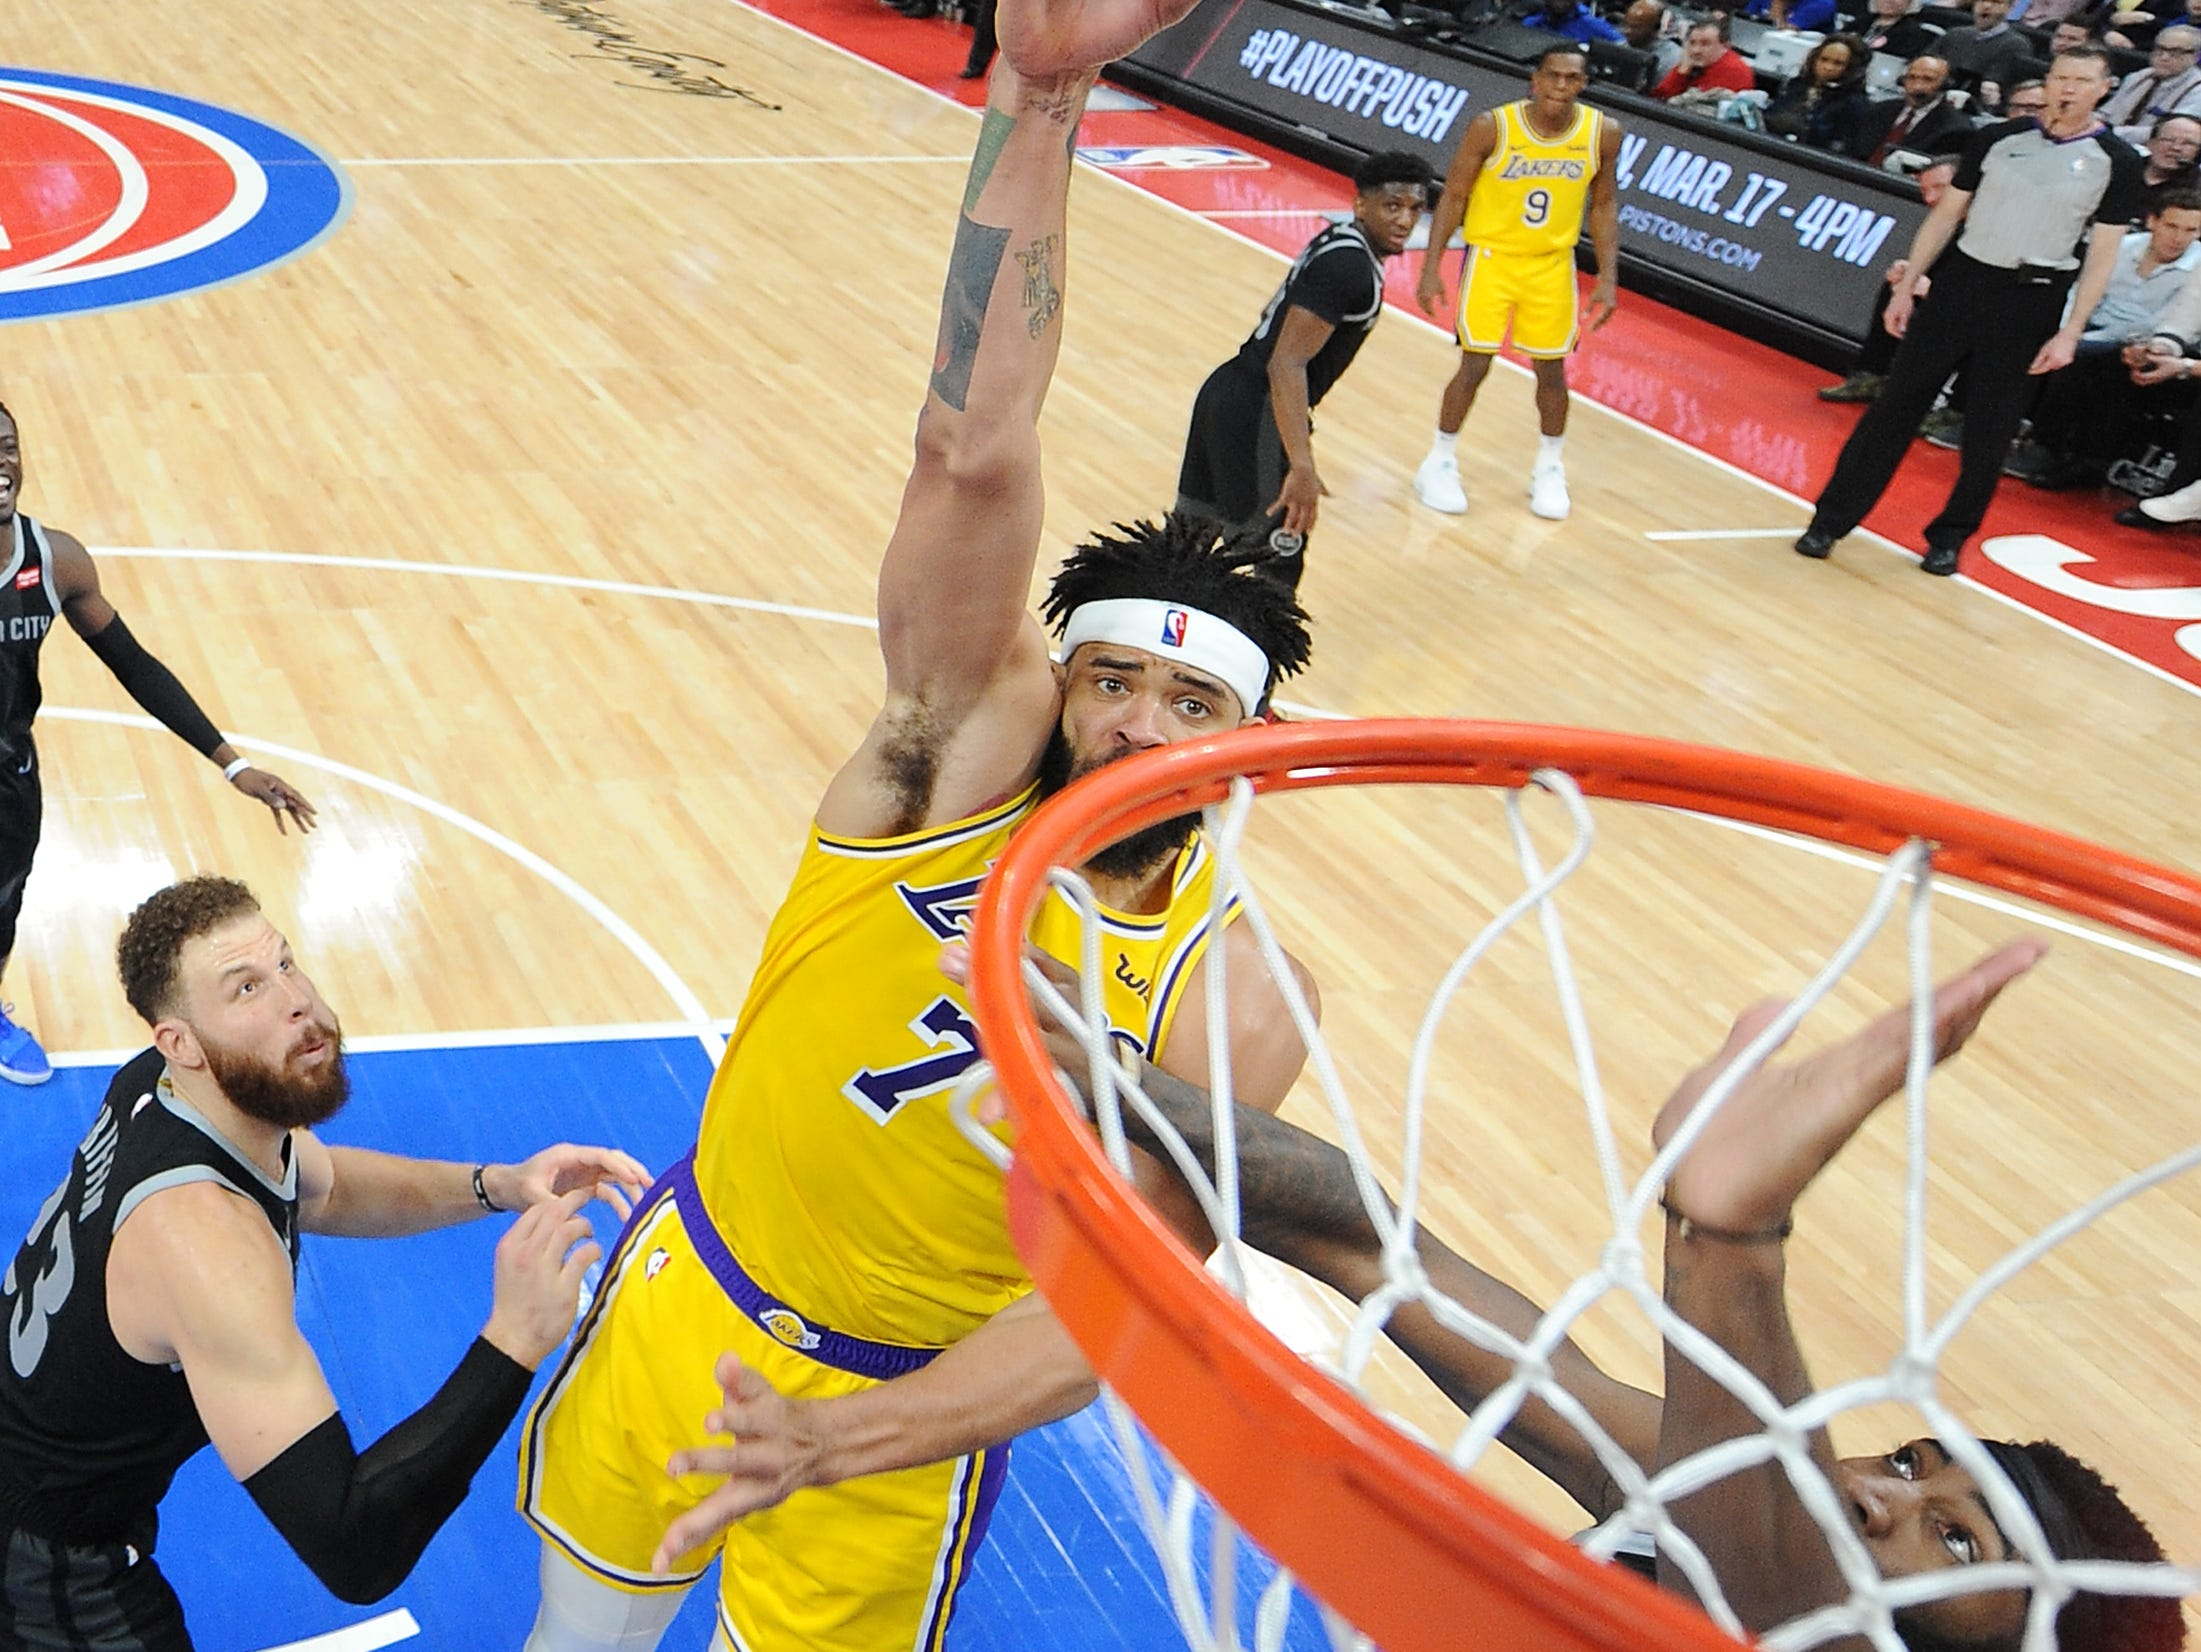 Lakers' JaVale McGee shoots over Pistons' Andre Drummond in the second quarter.